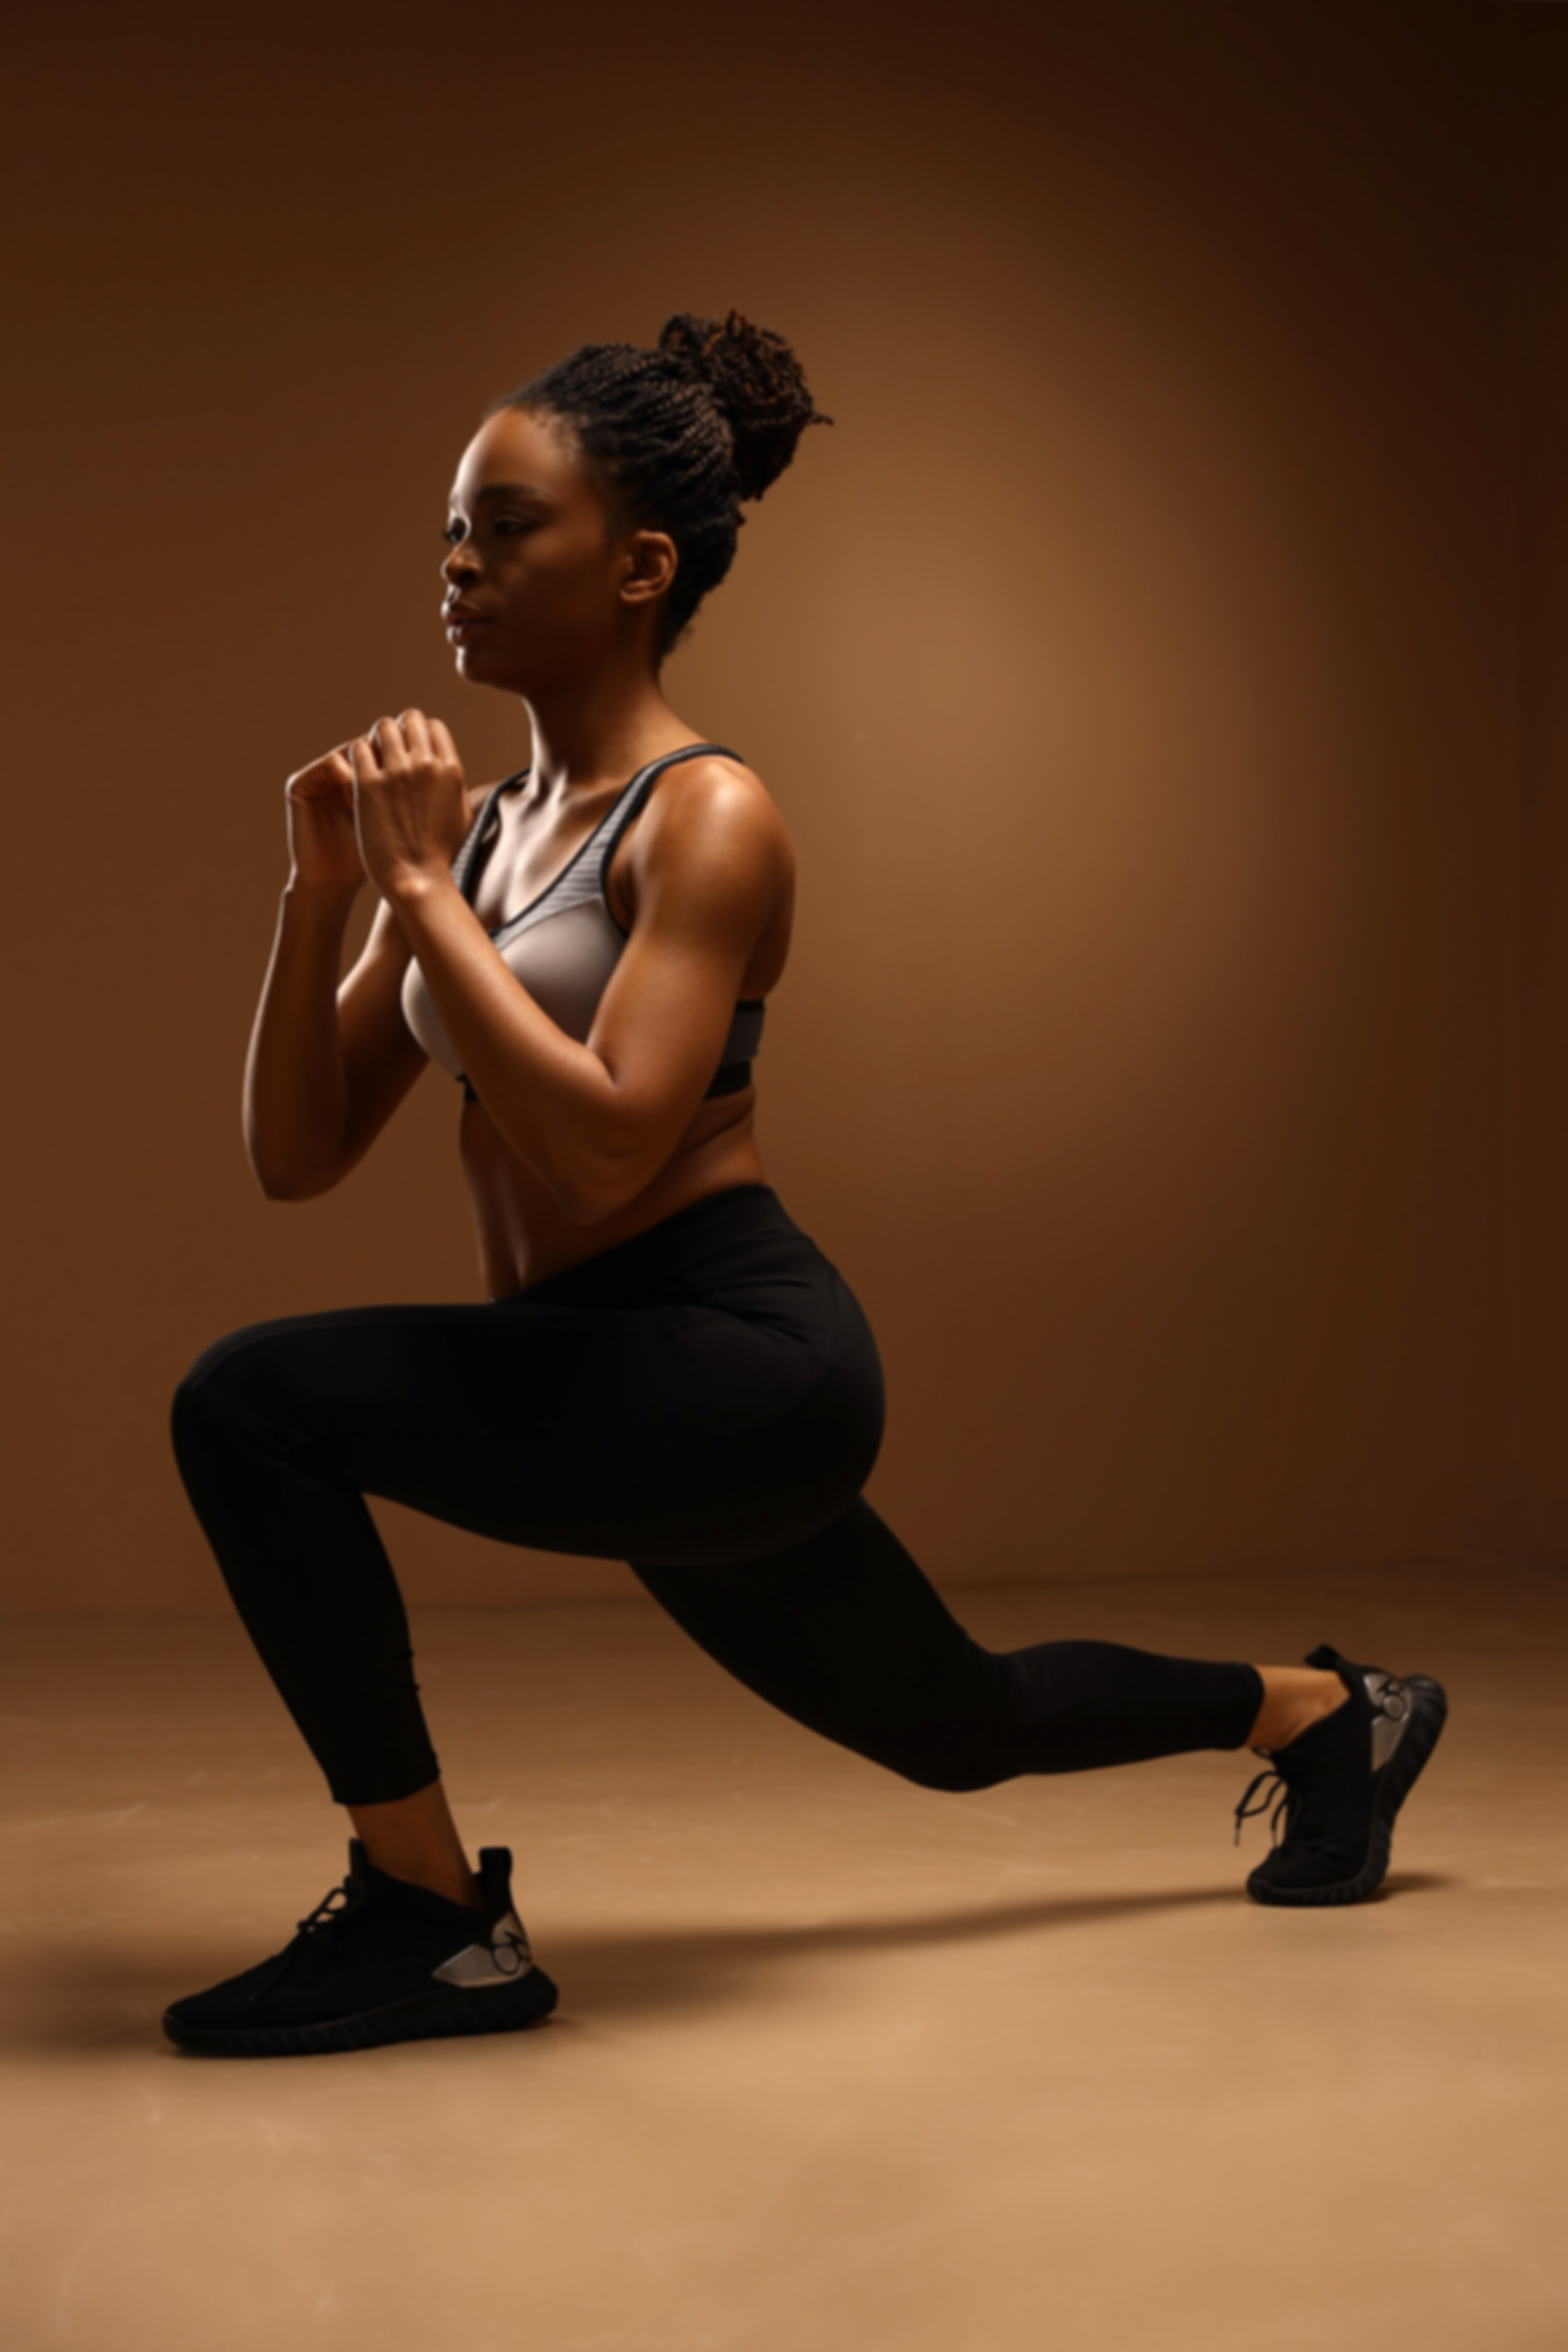 woman lunging